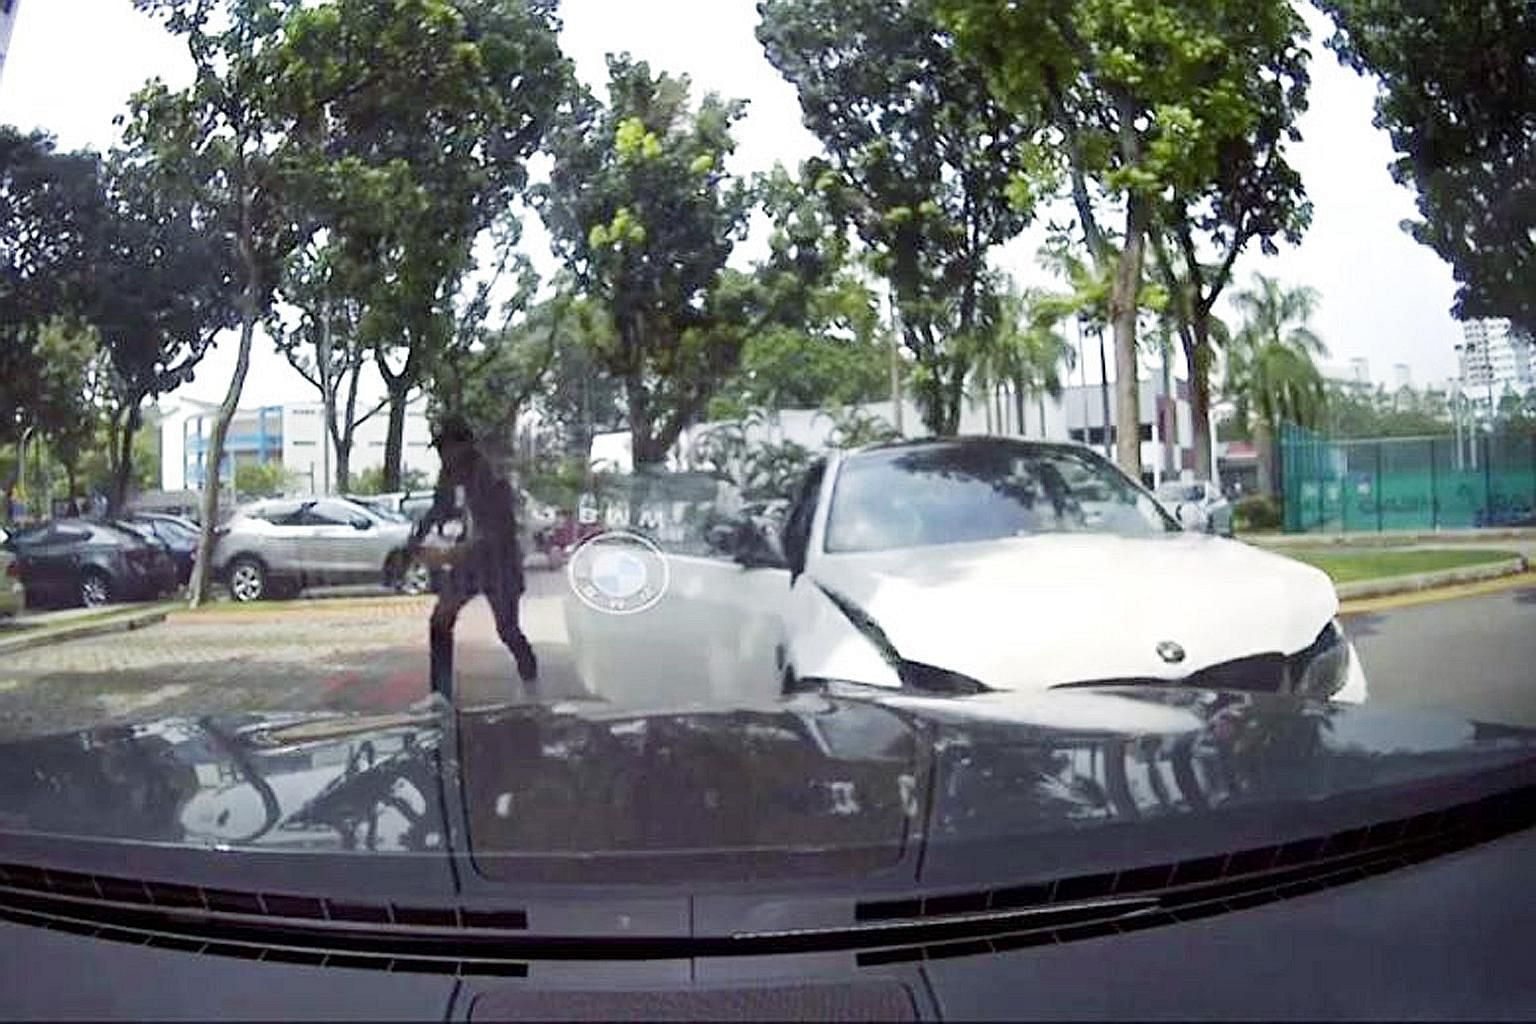 The suspect fleeing his car before it hit a black parked car. Preliminary investigations revealed that the man's car first hit a taxi in Geylang Bahru Road before this accident. He was arrested last Friday, and substances suspected to be controlled d